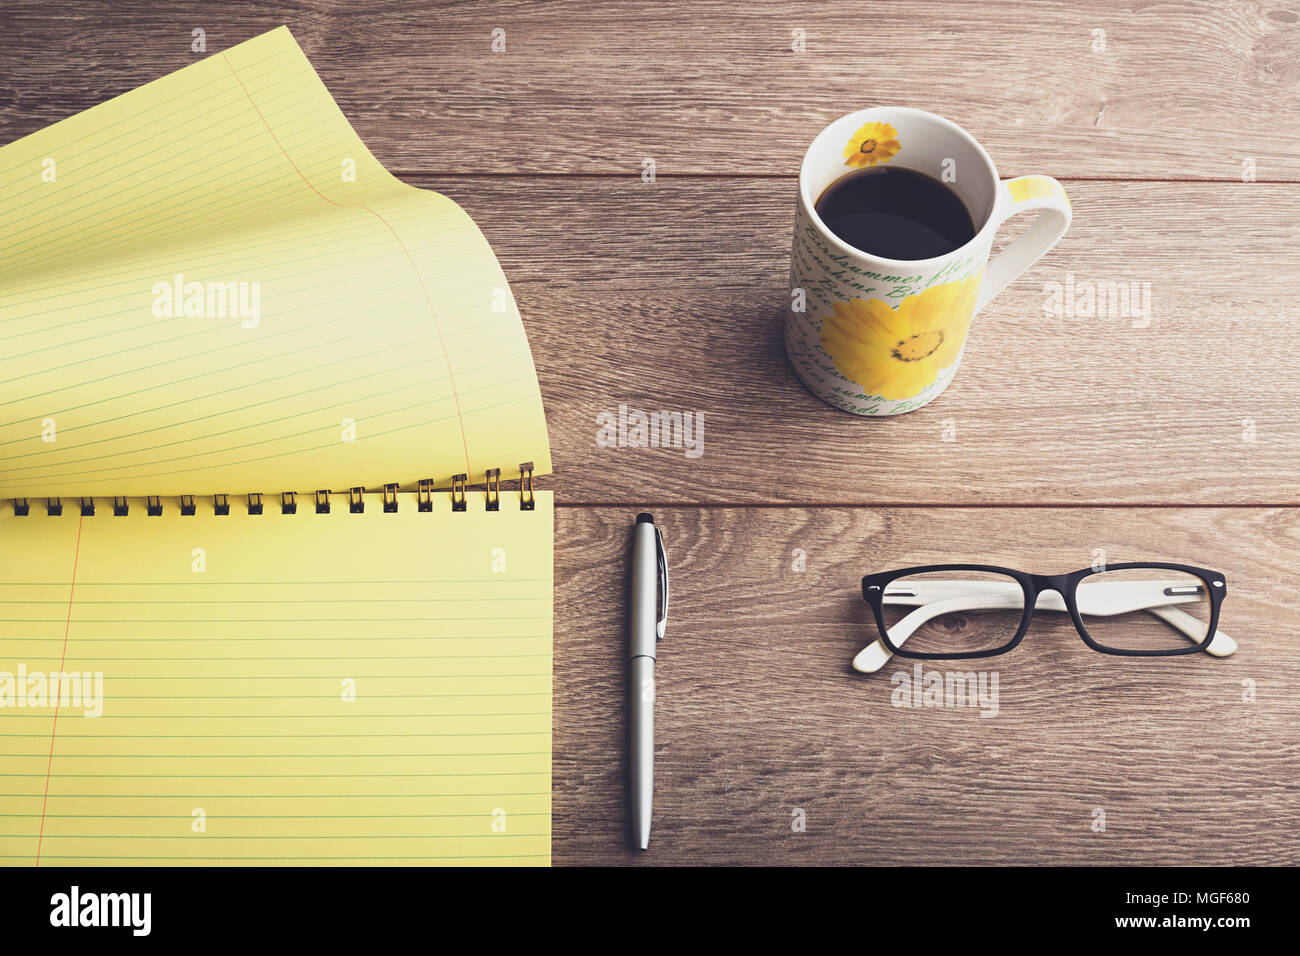 Business desktop. Coffee mug, eyeglasses, pen and yellow notepad on wooden table. Top down view. - Stock Image